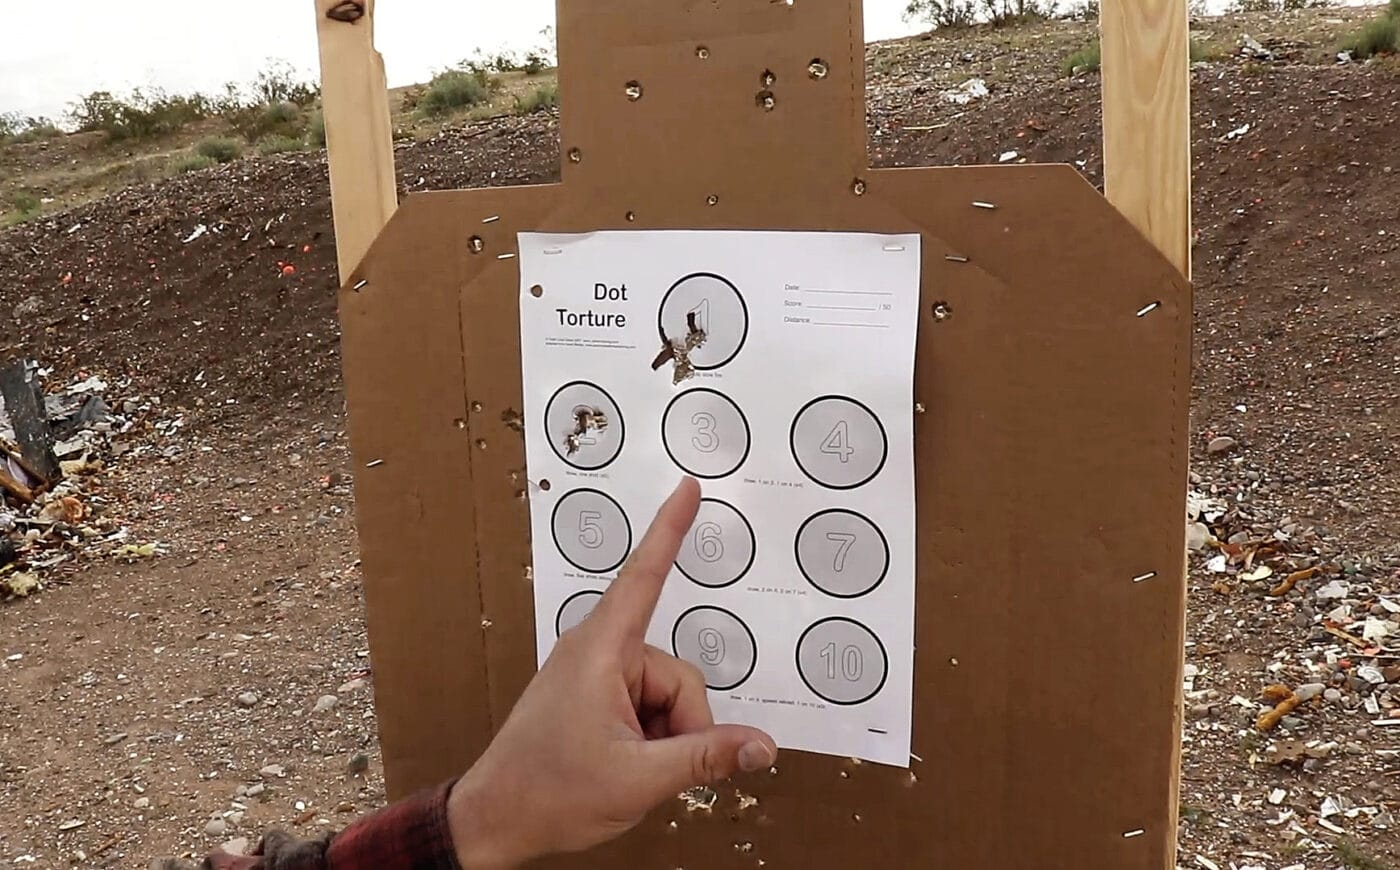 Target for Dot Torture shooting drill